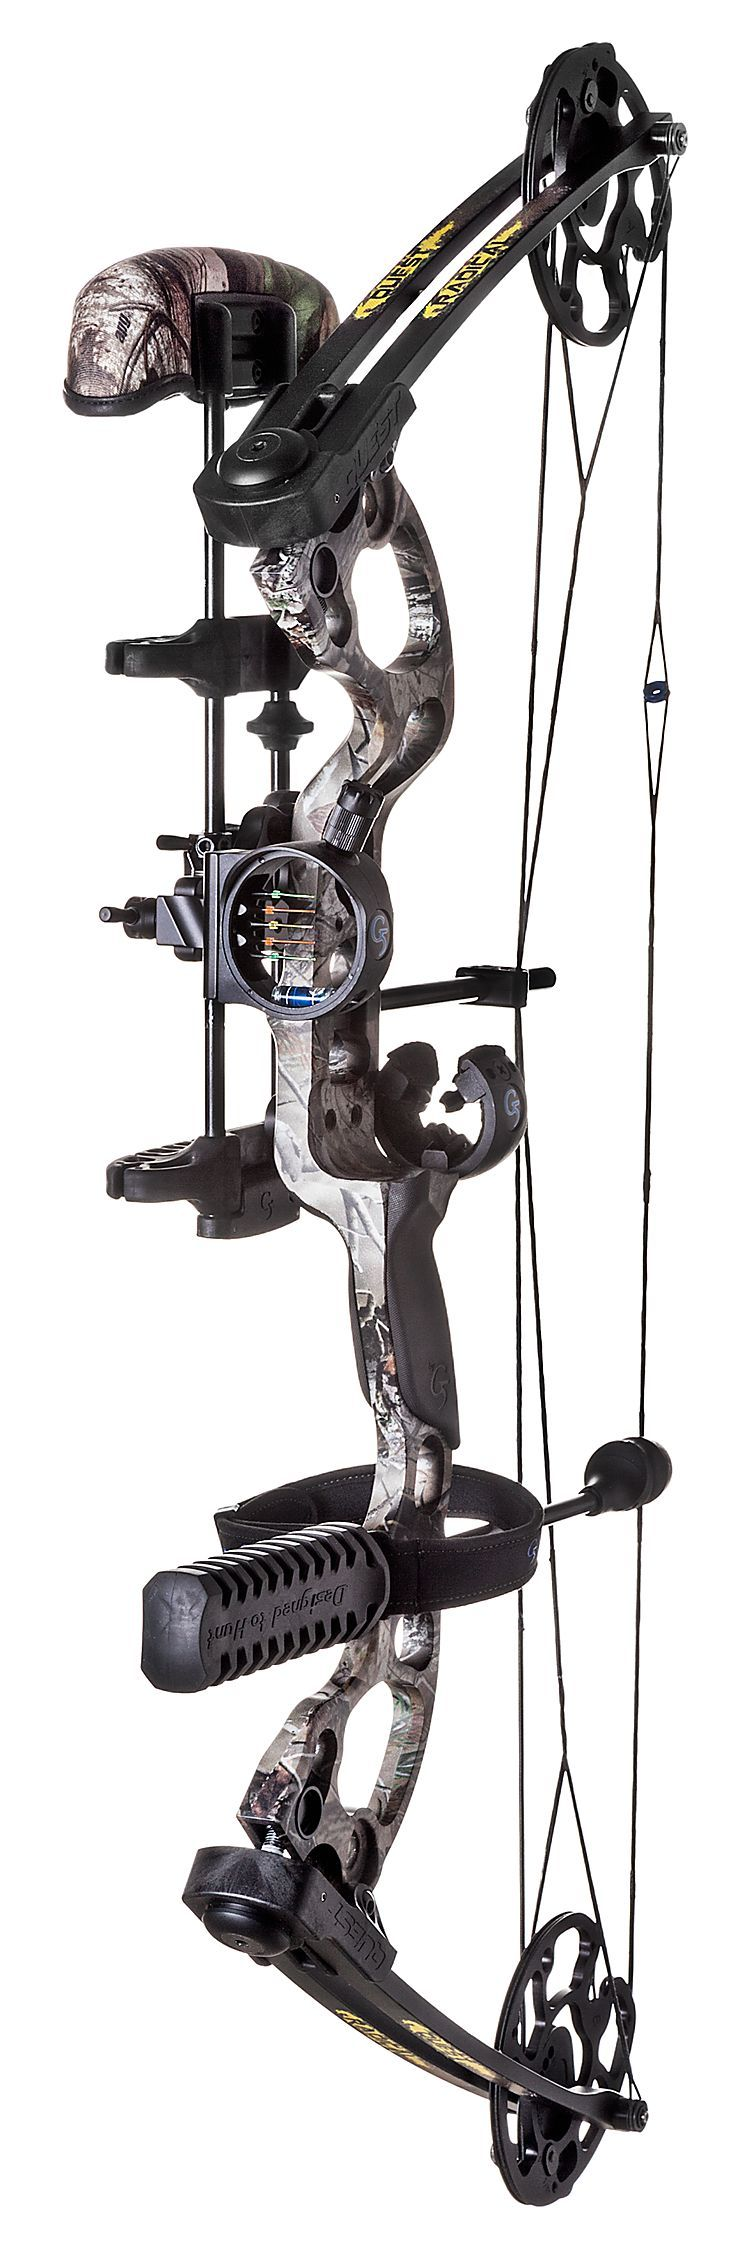 Quest By G5 Radical Compound Bow Package Arco E Flecha Armas